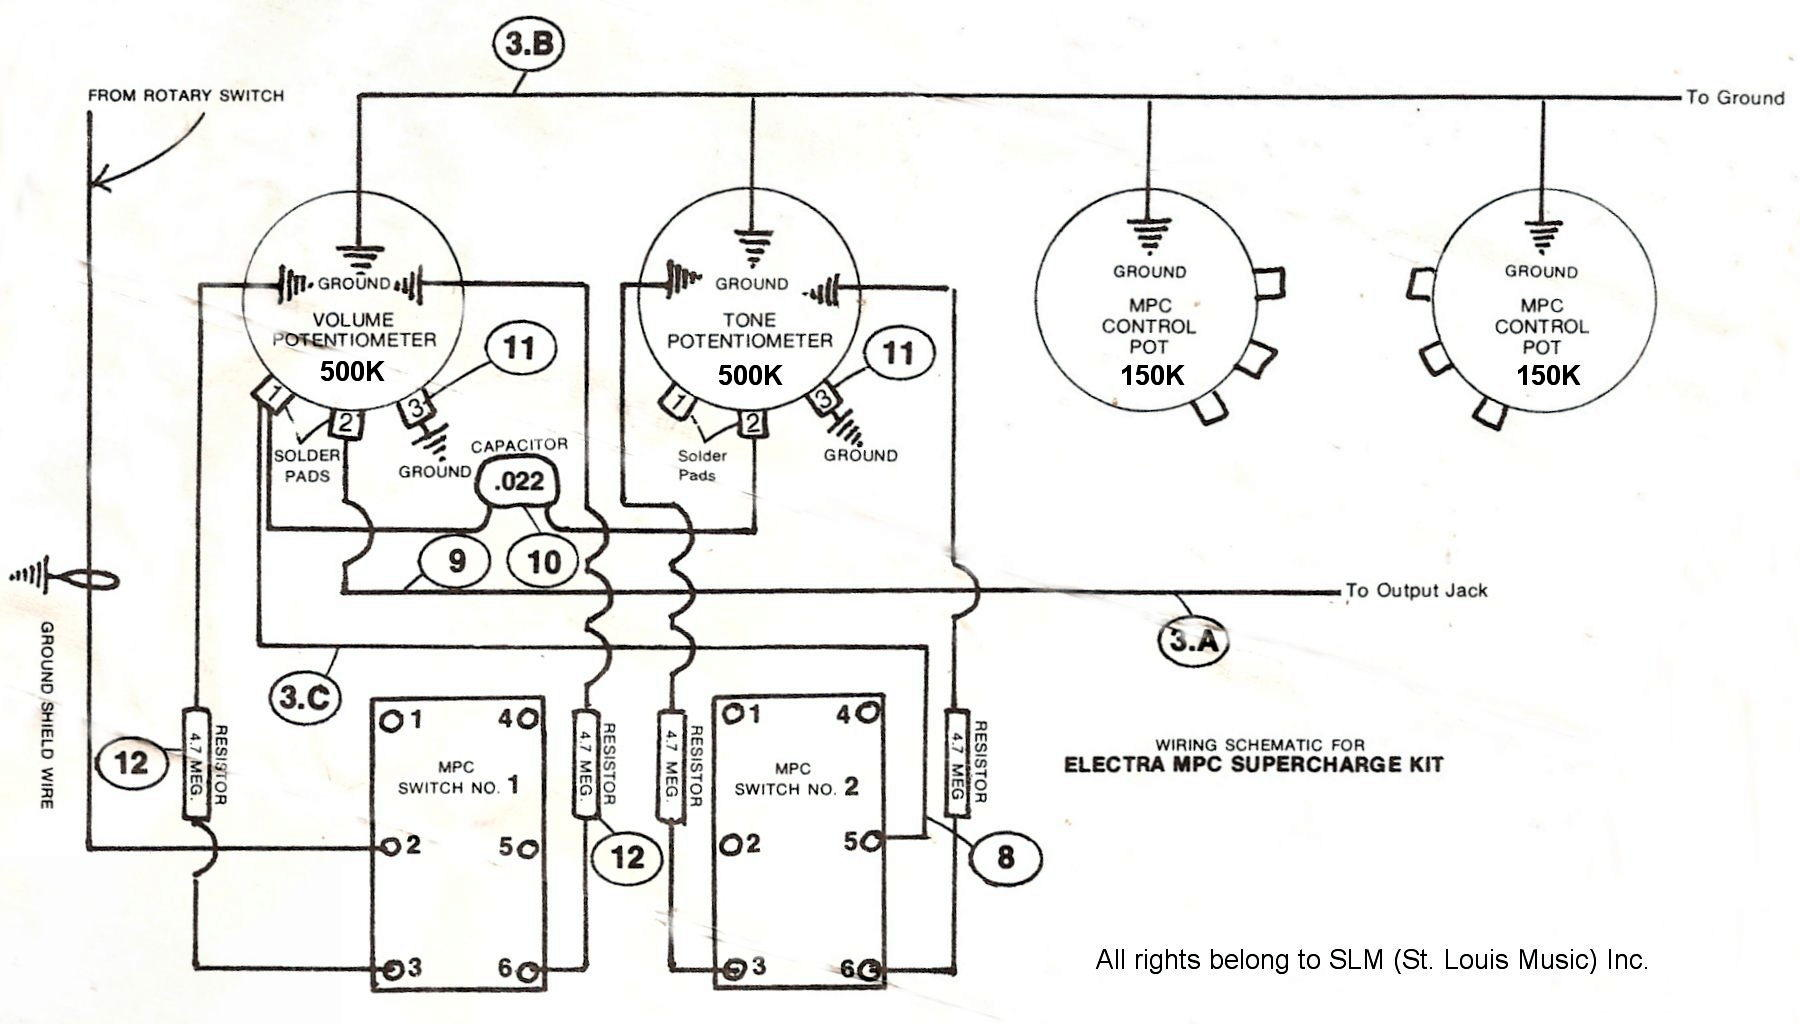 electra guitar wiring diagram wiring librarythe electra forums \u2022 view topic minty condition x320 mpc with ohsc image mosrite guitar wiring diagram